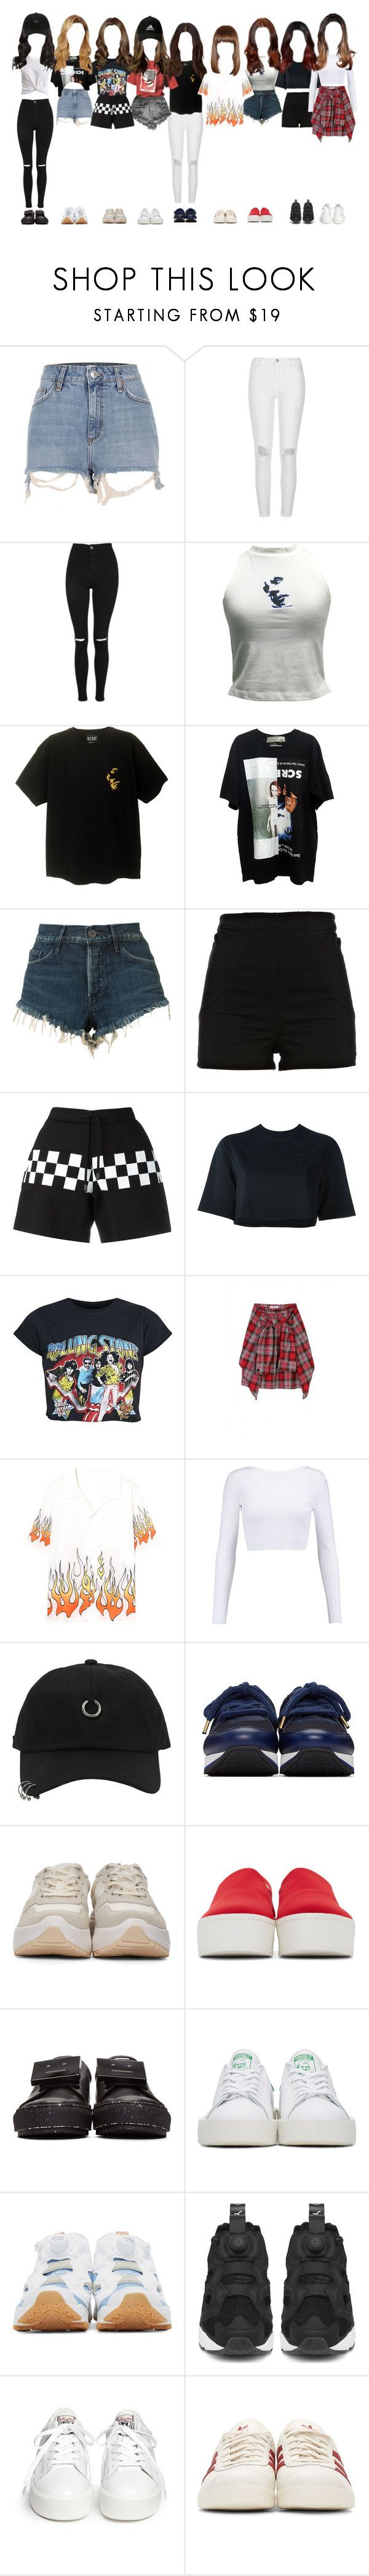 """""""CaFei's RS Entertainment Audition"""" by kkomppul ❤ liked on Polyvore featuring River Island, Topshop, 3x1, Dsquared2, NIKE, Cushnie Et Ochs, StyleNanda, Jimmy Choo, Eytys and Opening Ceremony"""